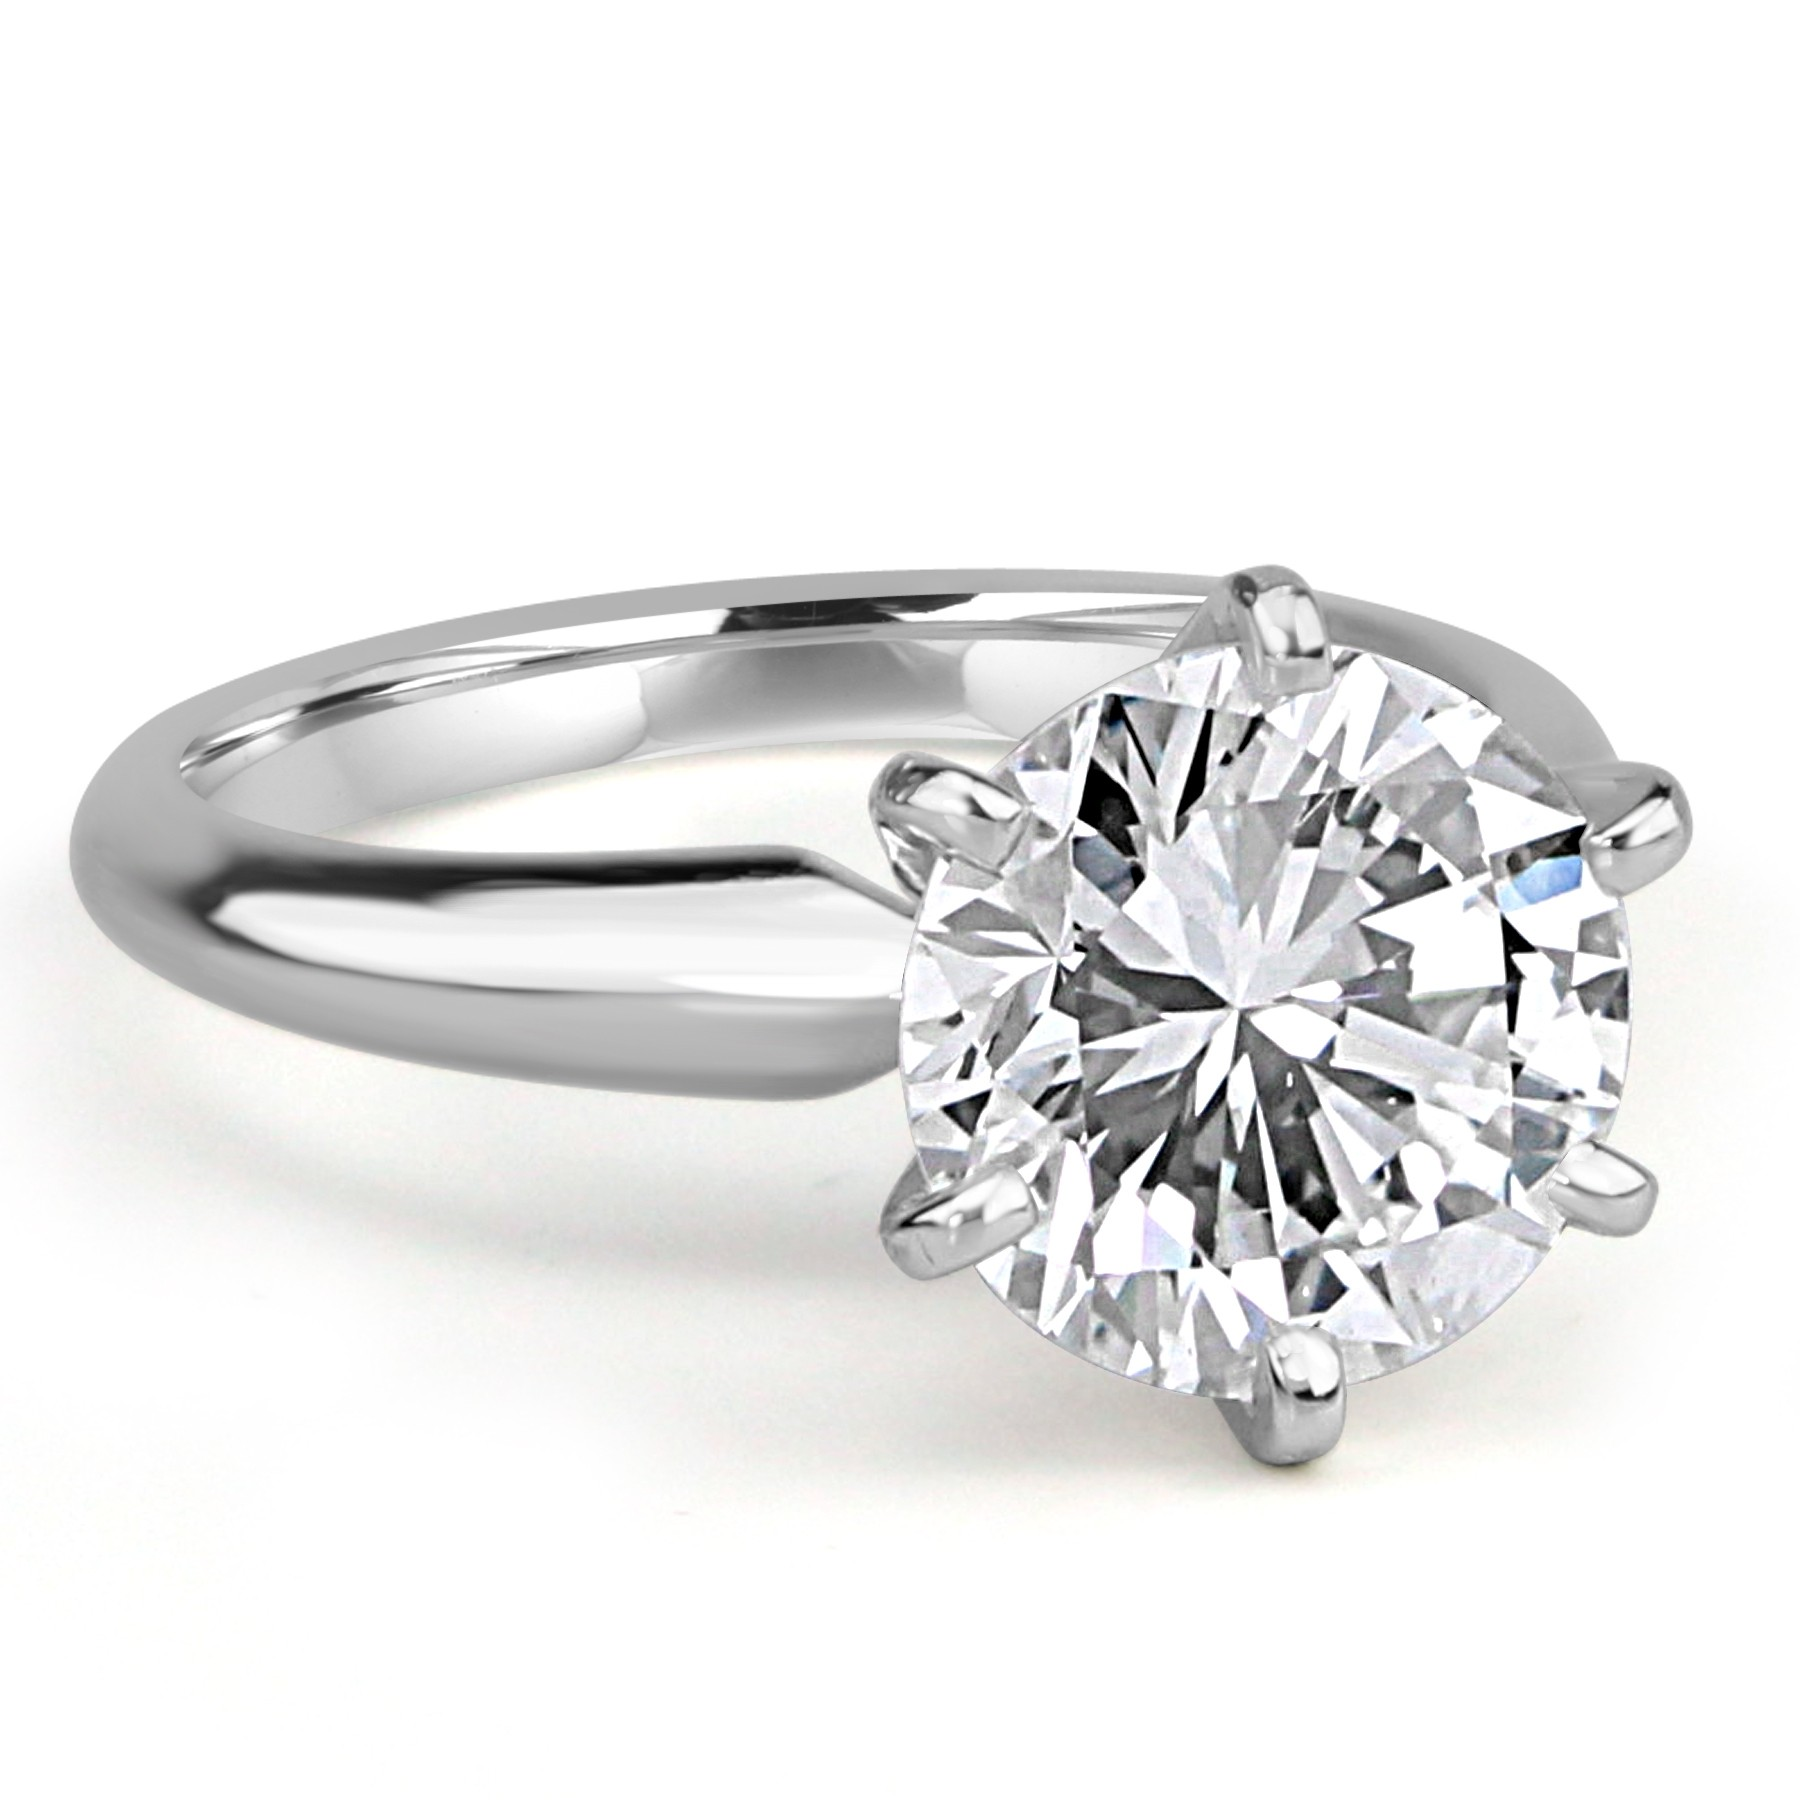 ct classic htm pave in p gold diamond white ring engagement rings prongs round scalloped cut